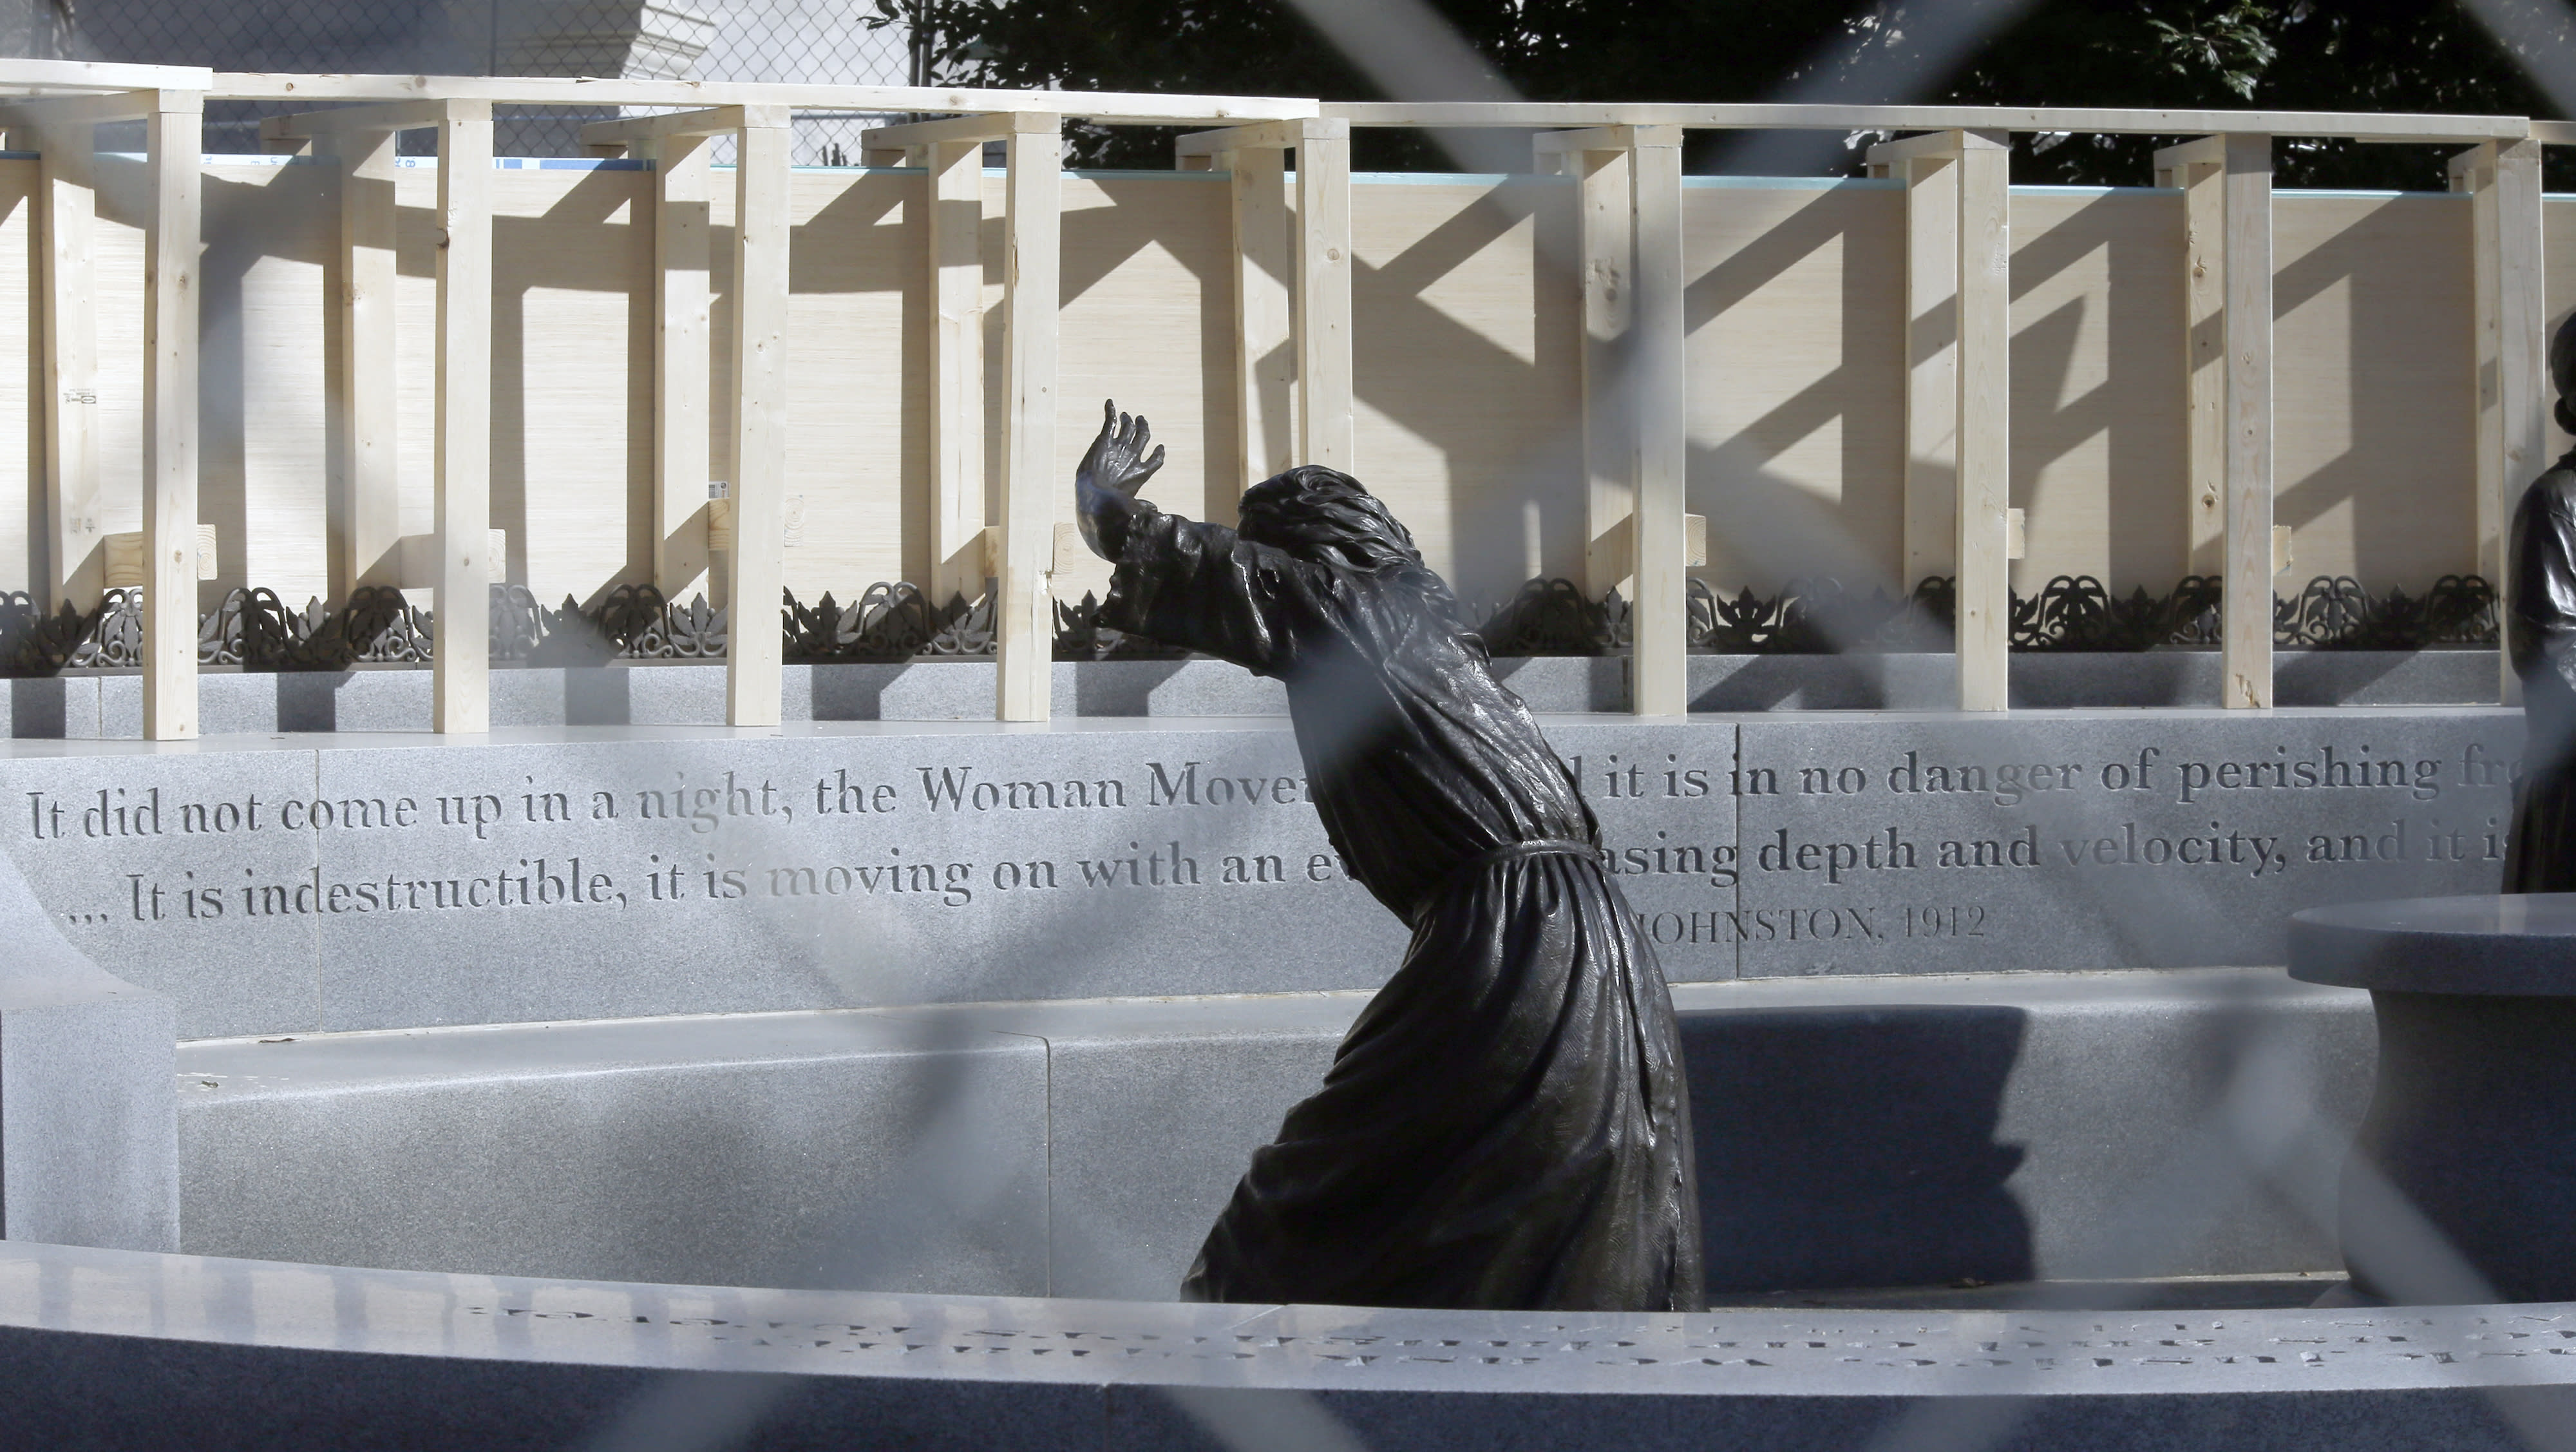 The statue of pioneer woman Laura Ingles is shown behind the fencing put up around the Virginia Women's Memorial on Capitol Square in Richmond, Va., Friday, Jan. 17, 2020. The fencing was to protect the monuments from the large crowd expected for the pro-gun rally Monday, Jan. 20. (Bob Brown/Richmond Times-Dispatch via AP)